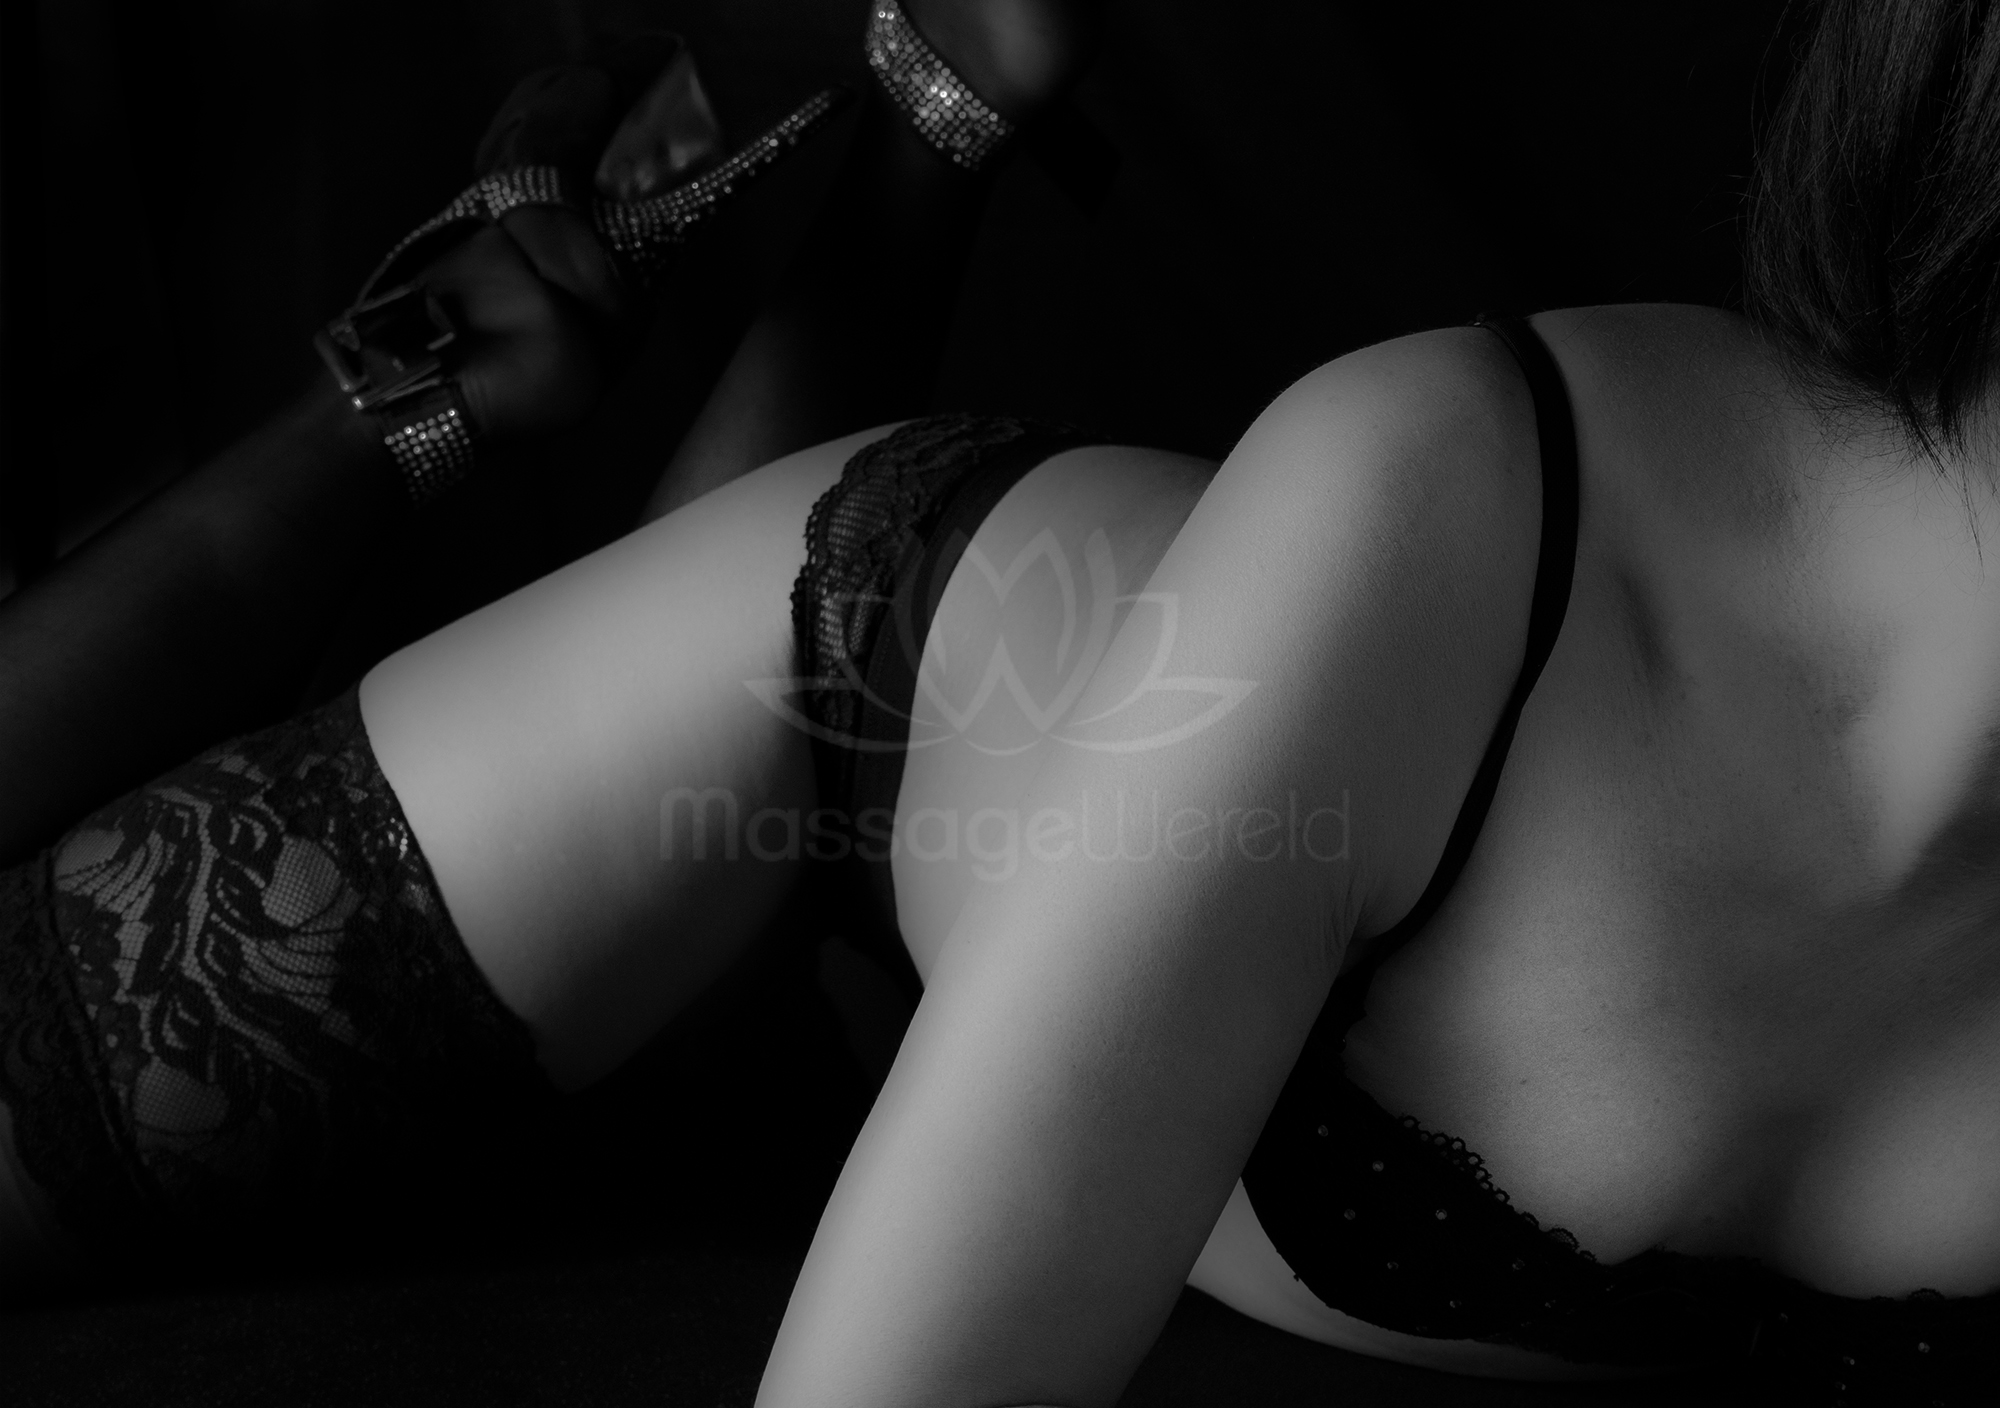 sexdate privat body to body massage voor vrouwen